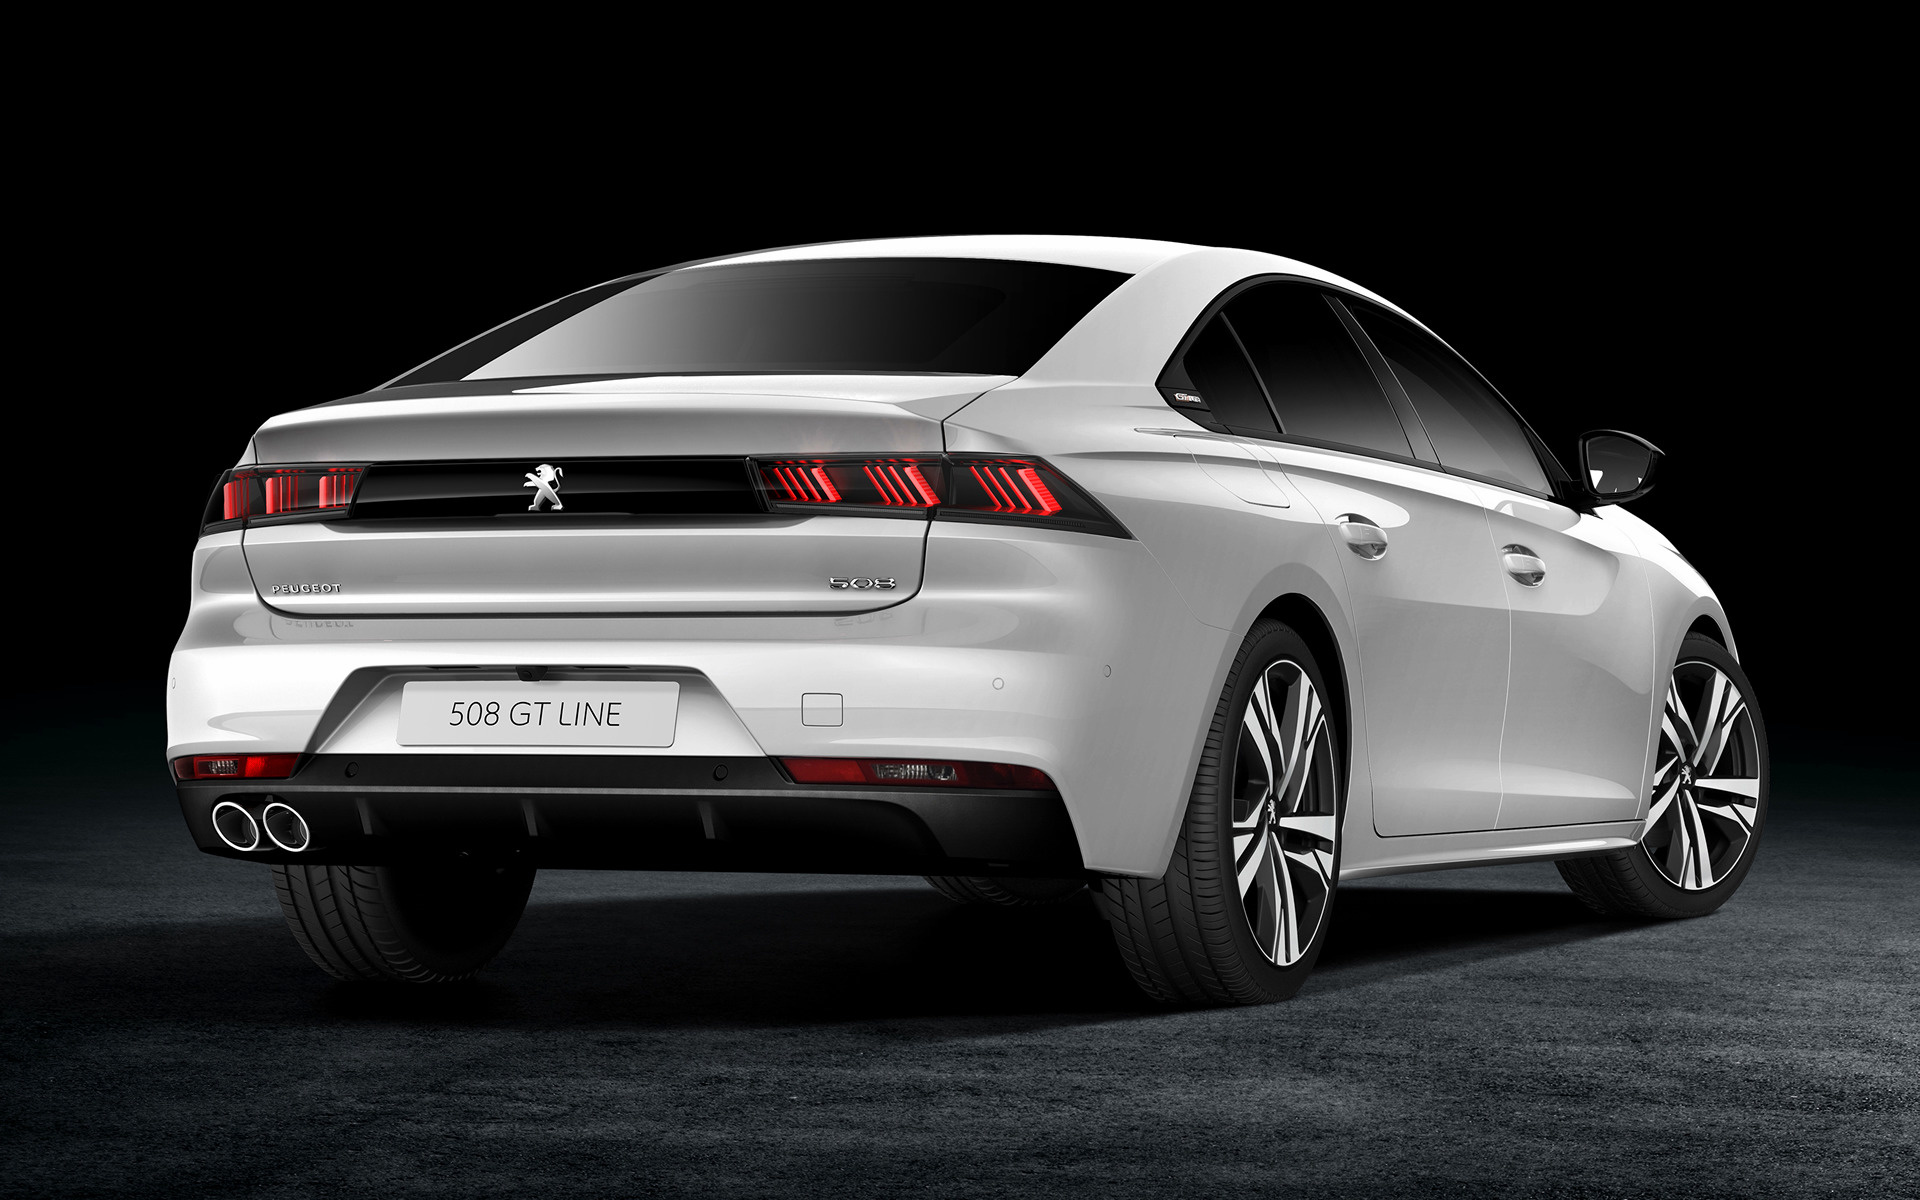 Spain Wallpaper Iphone We Bet You Didn T Know These Facts About Peugeot 508 Gt